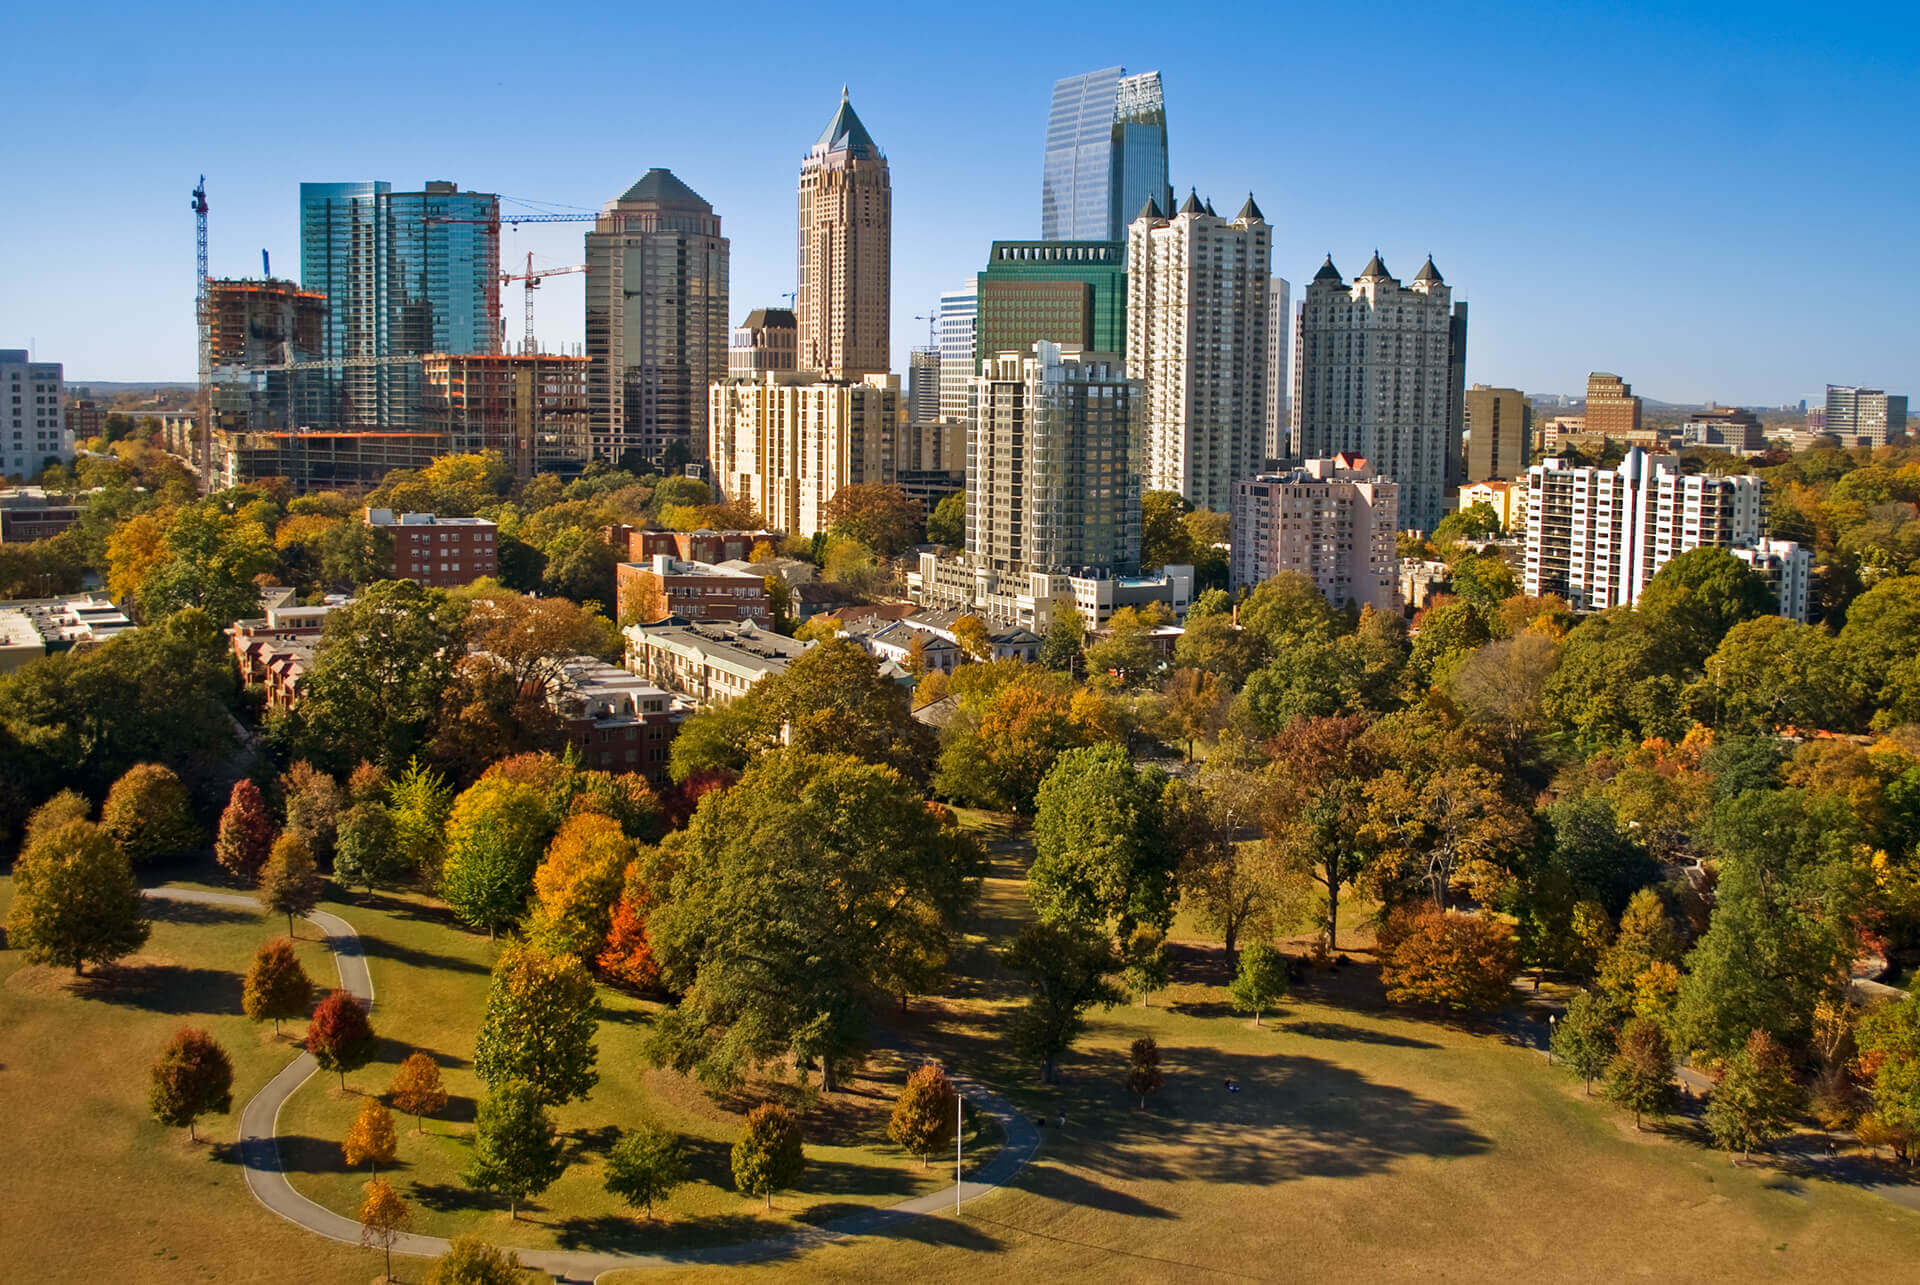 Piedmont park during fall